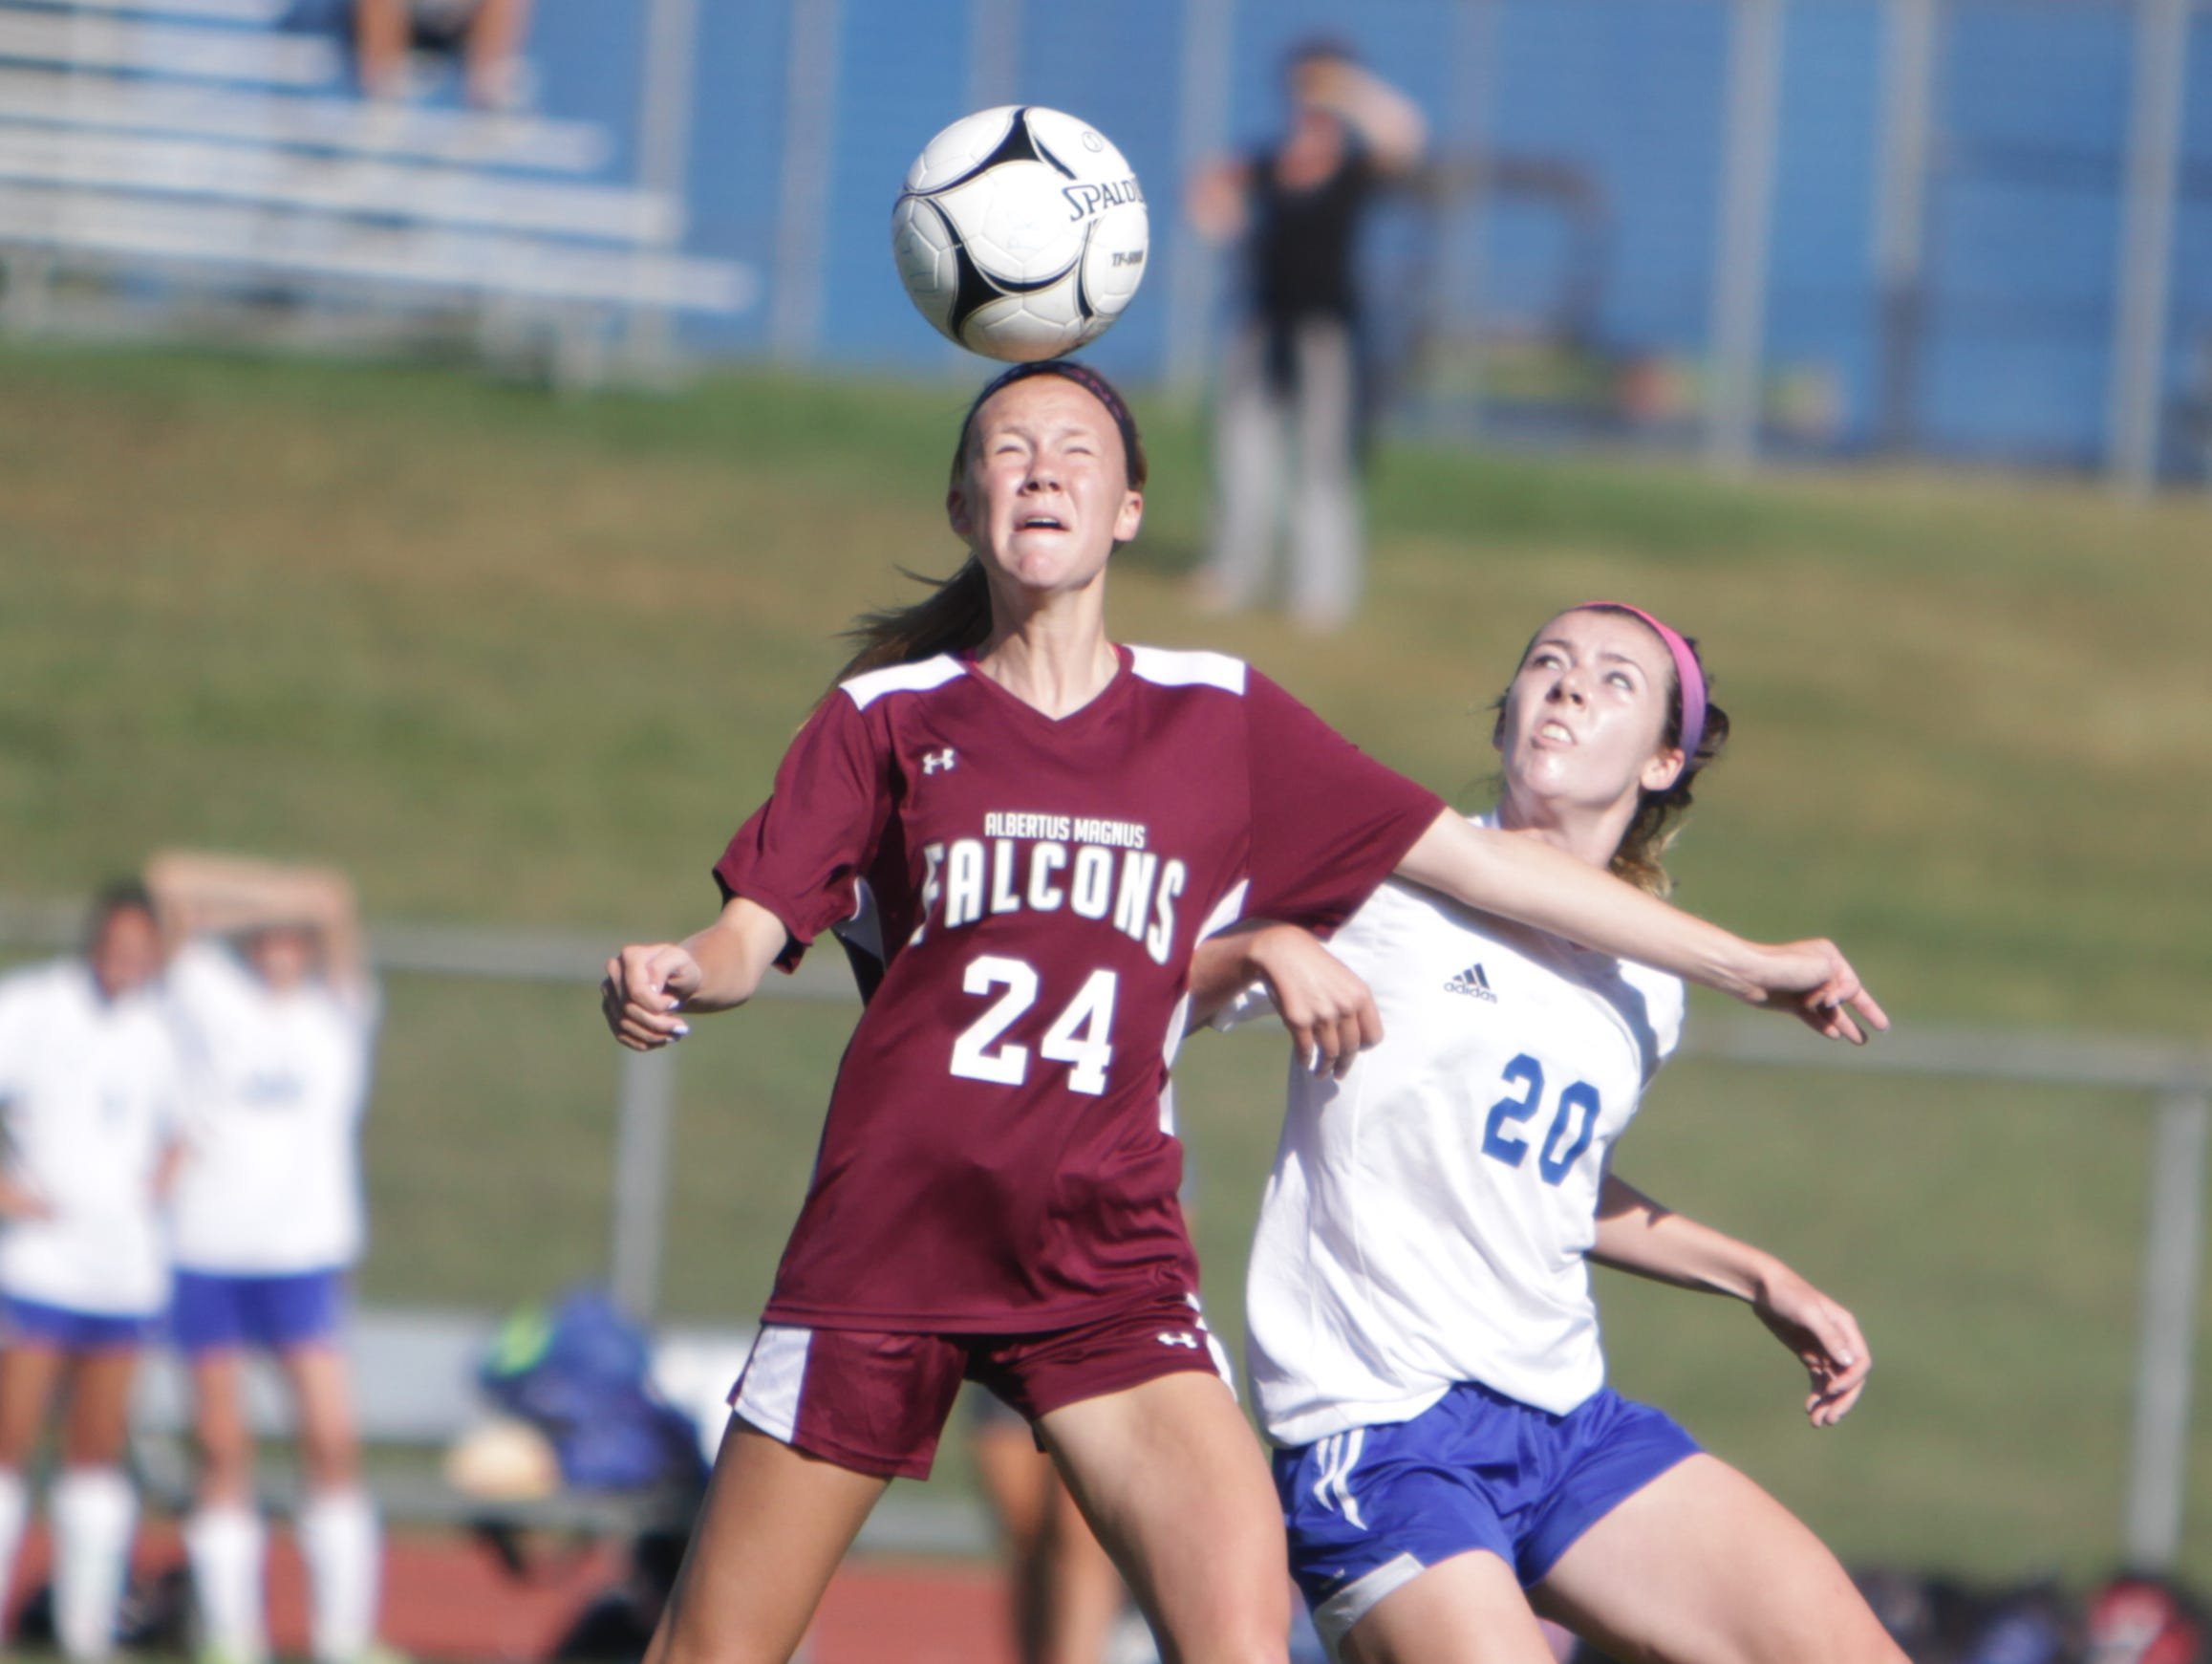 Albertus Magnus' Mazie Stiles (24) wins an aerial battle for the ball against Pearl River's Cate Feerick during a Section 1 girls soccer game between Pearl River and Albertus Magnus at Pearl River High School on Saturday, Sept. 17th, 2016. The teams played to a scoreless draw.